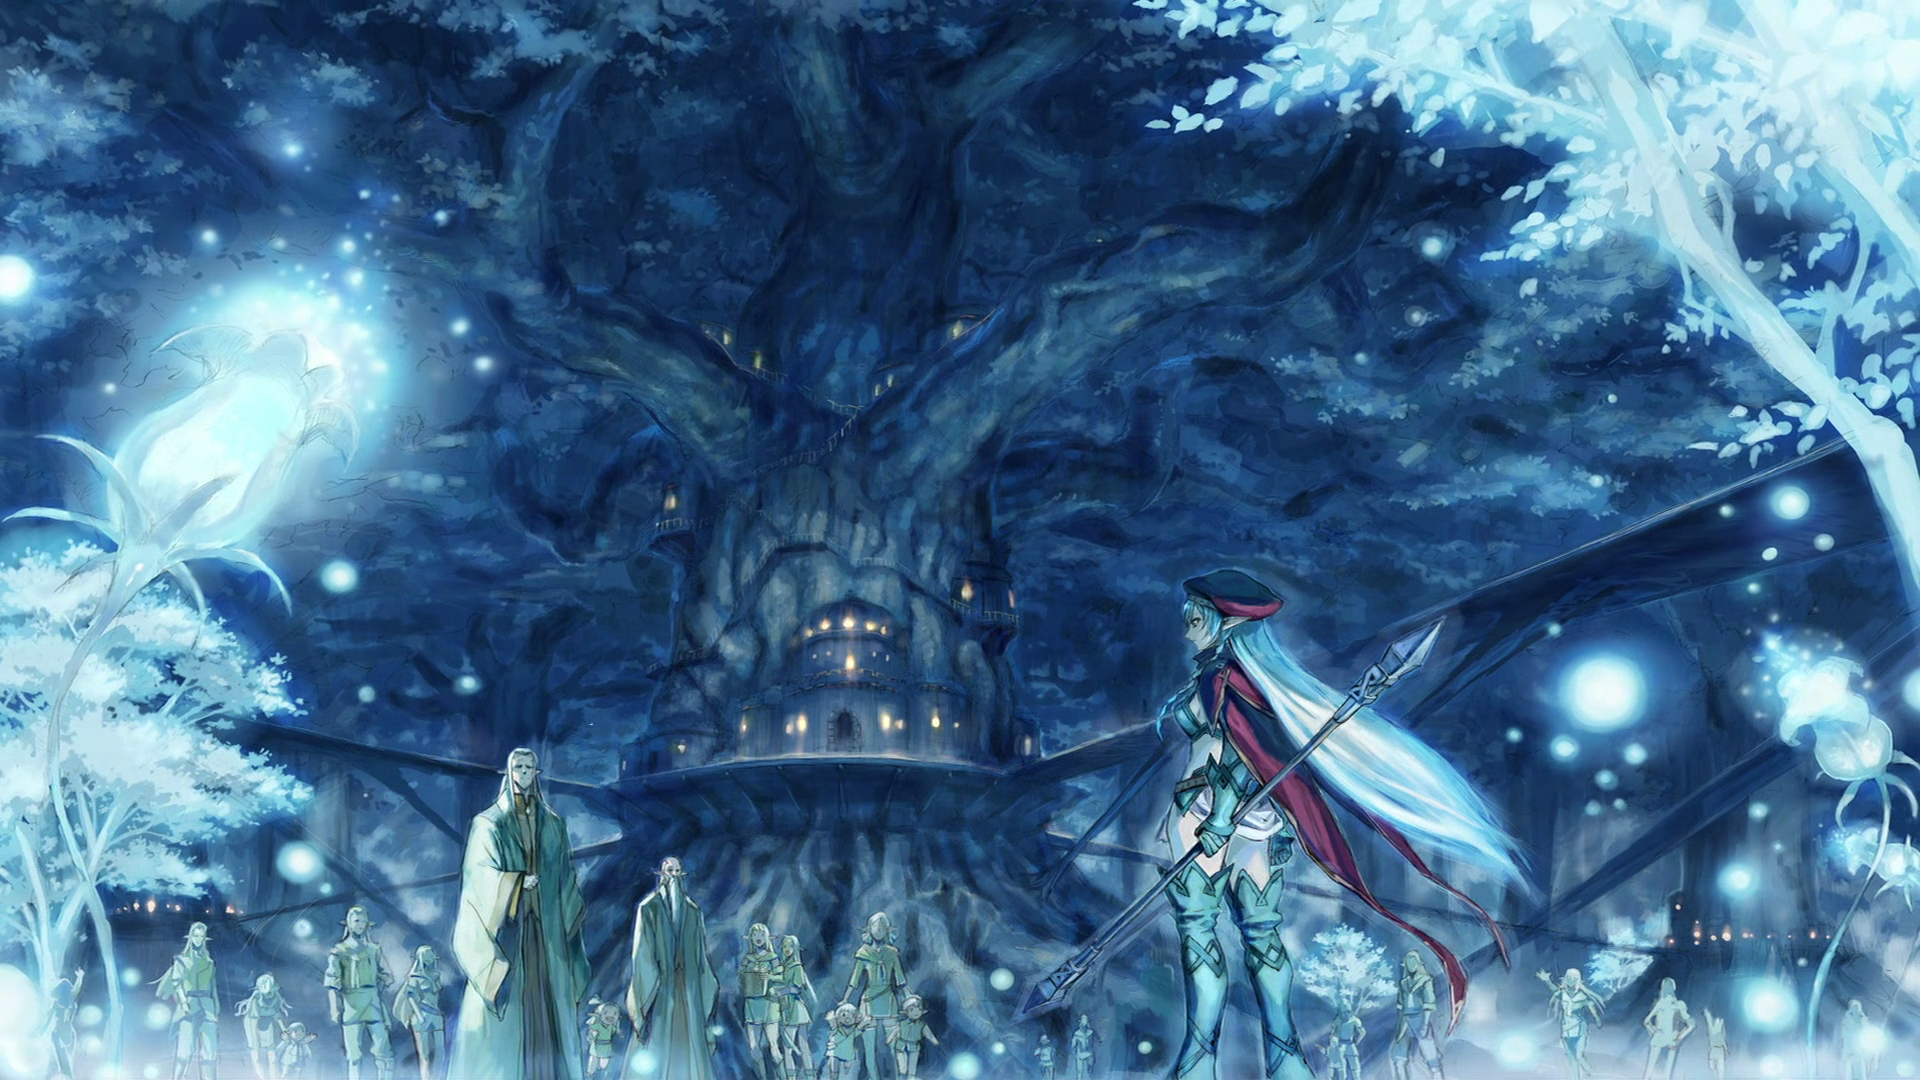 Trees Queens blade elves HD Wallpaper